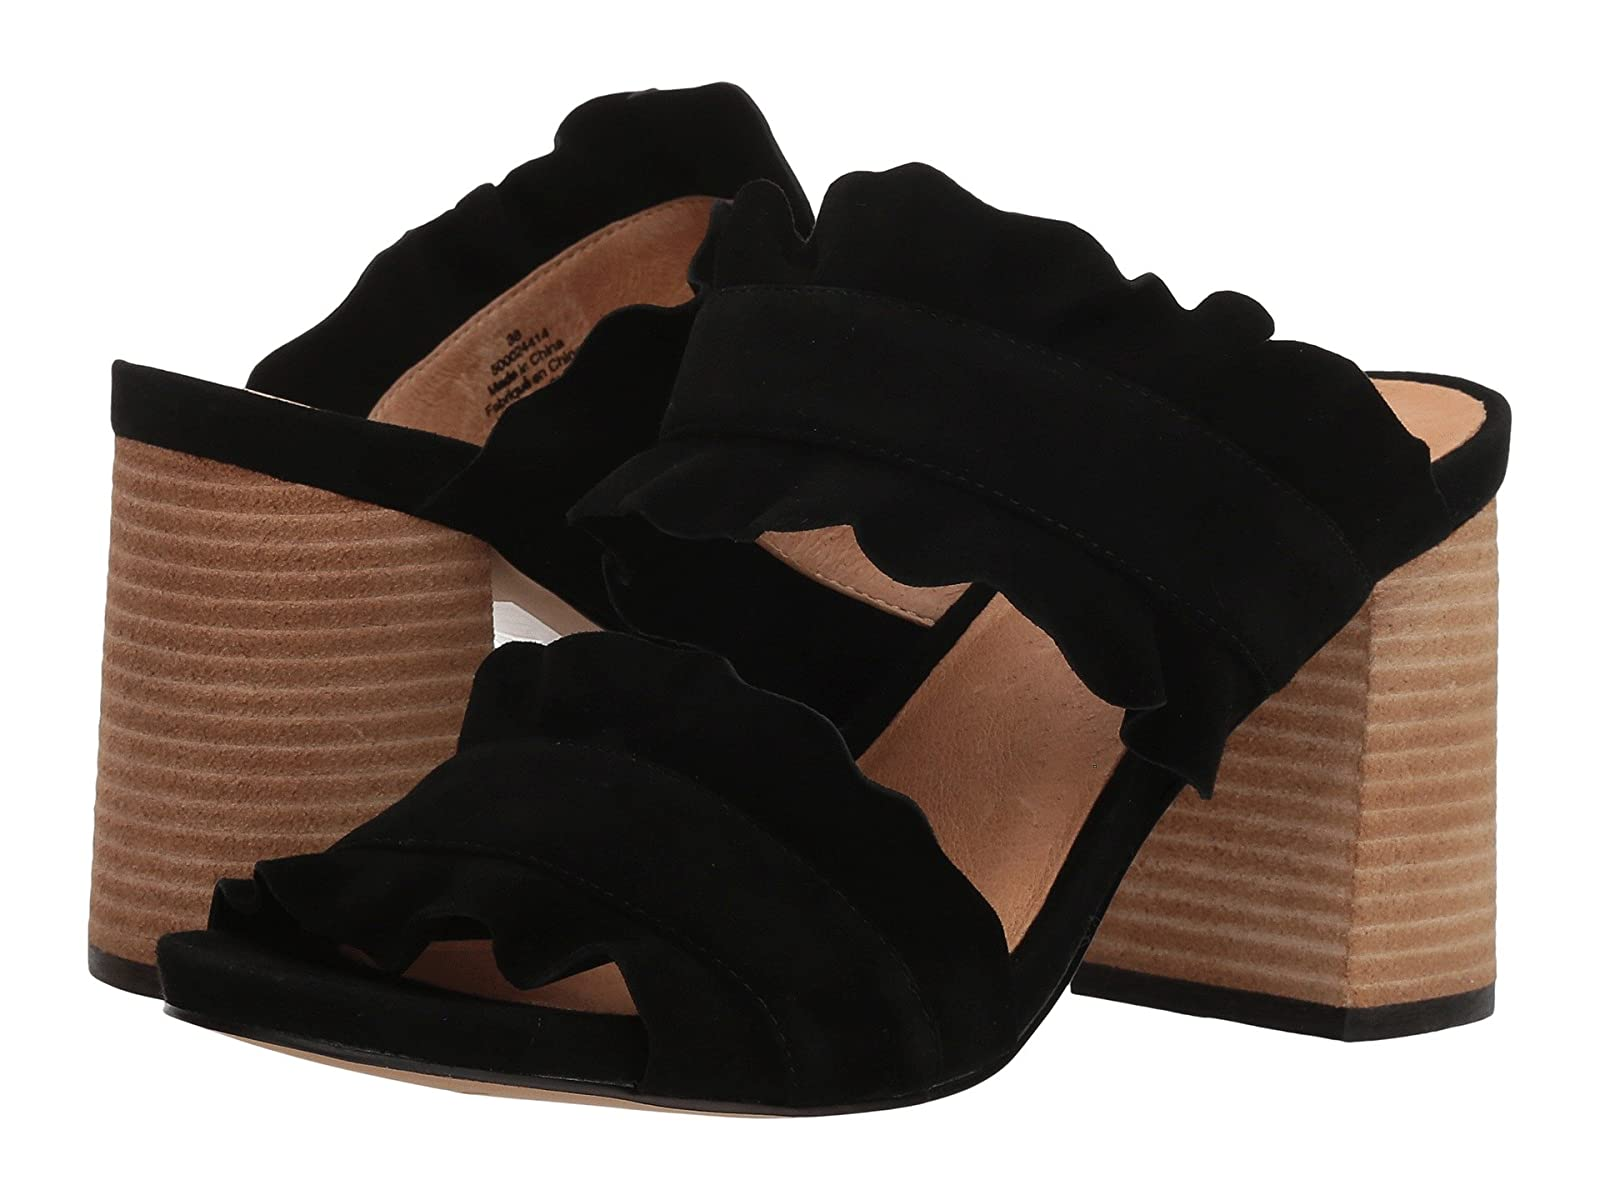 Free People Rosie Ruffle HeelCheap and distinctive eye-catching shoes